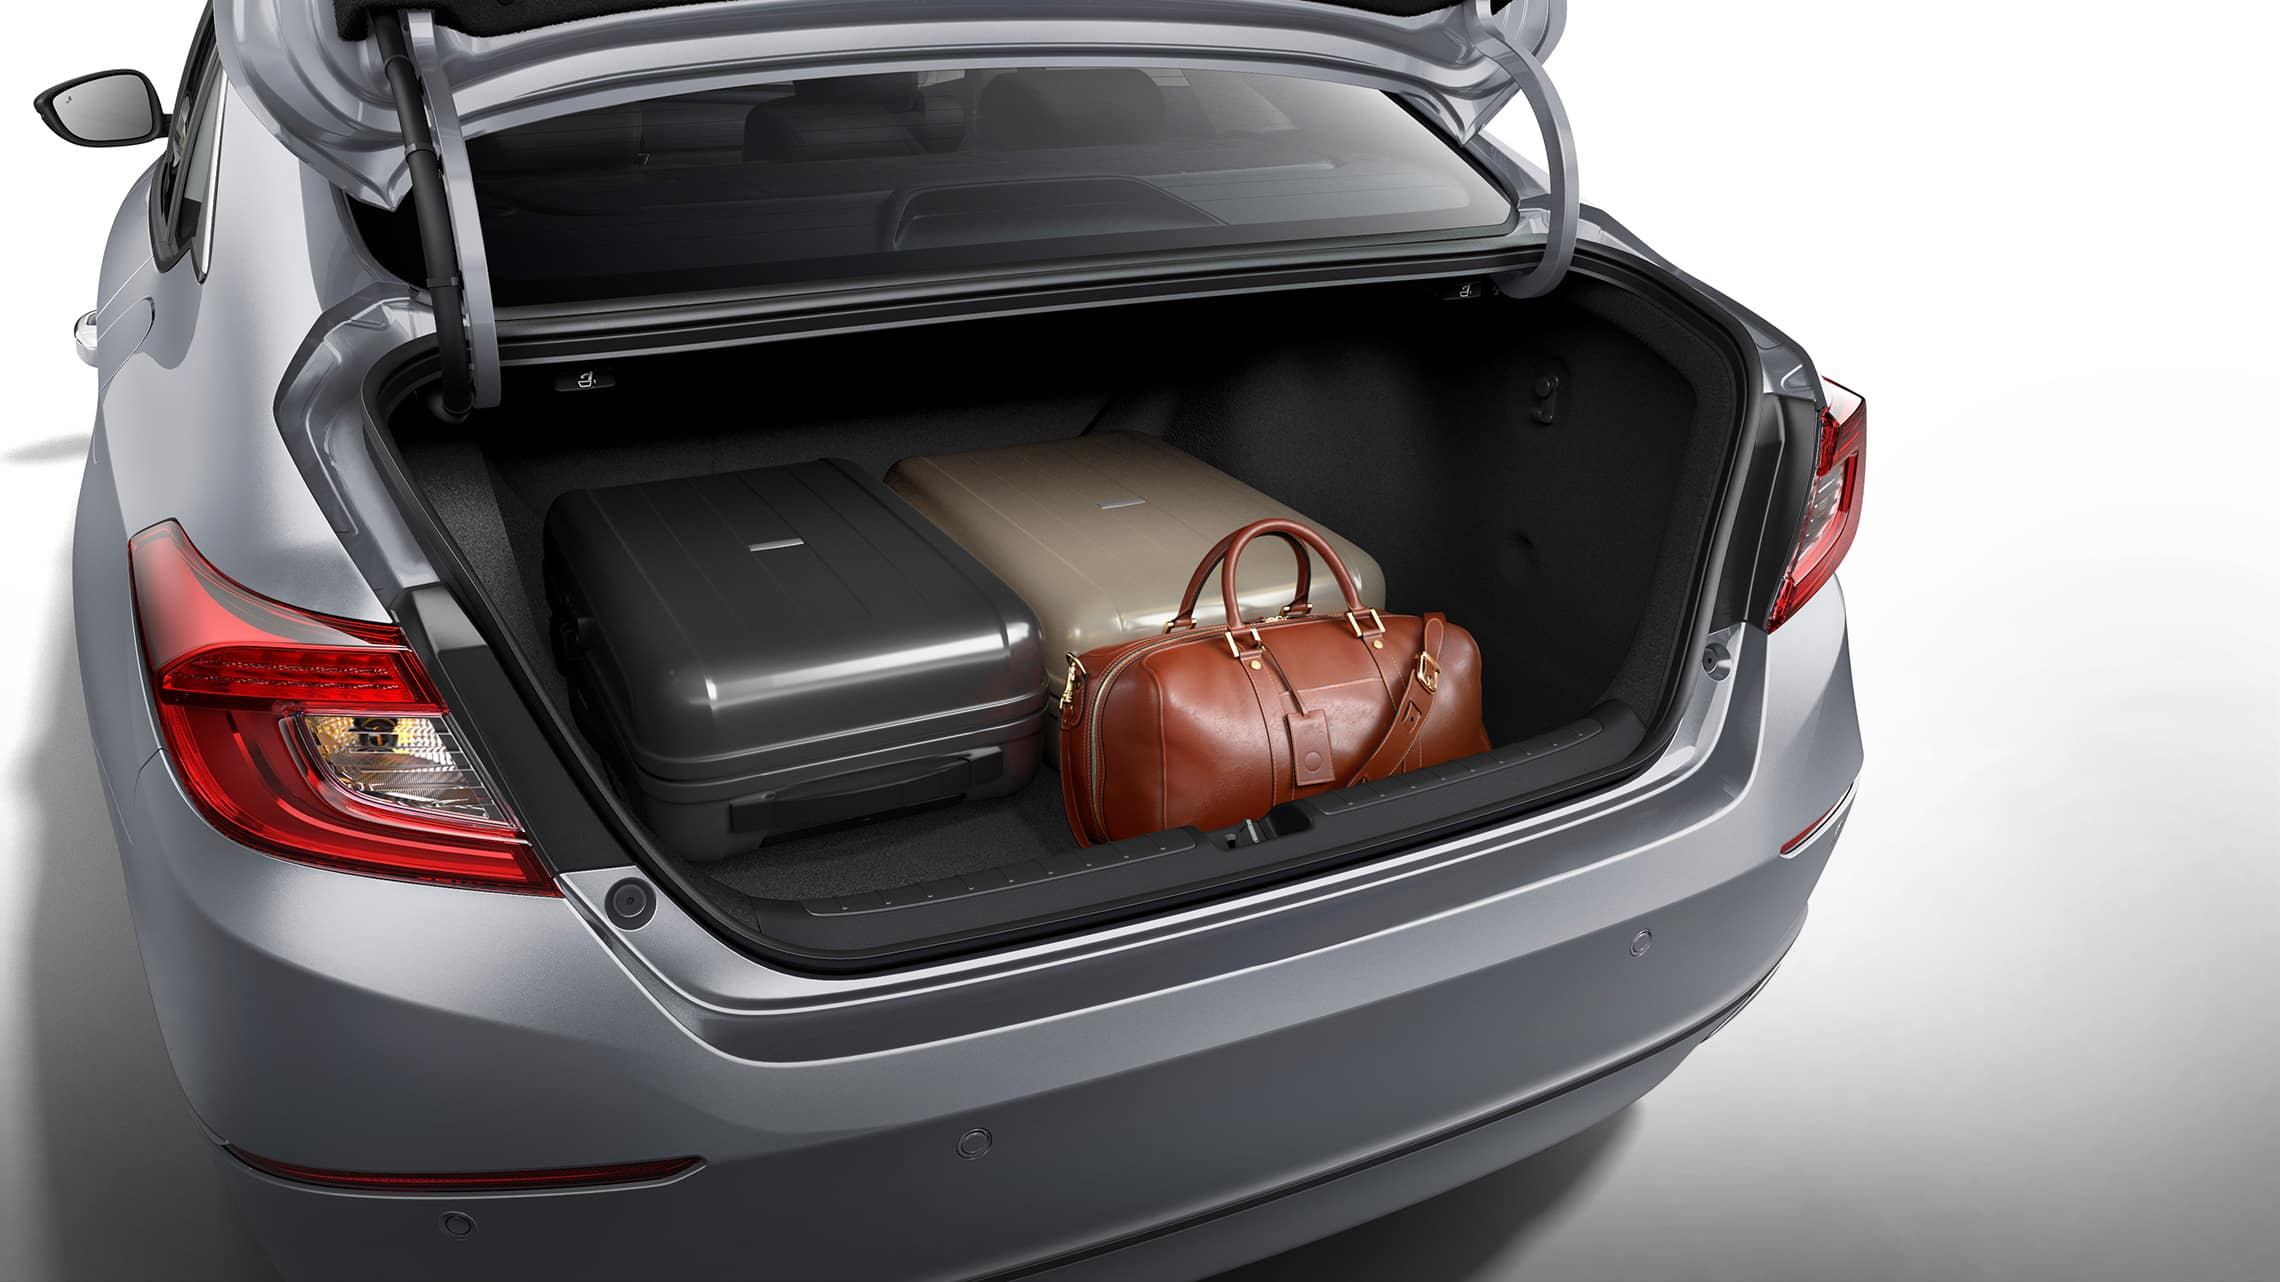 Rear view of the 2021 Accord Hybrid, shown in Lunar Silver Metallic, with the trunk open and with stored luggage displayed.